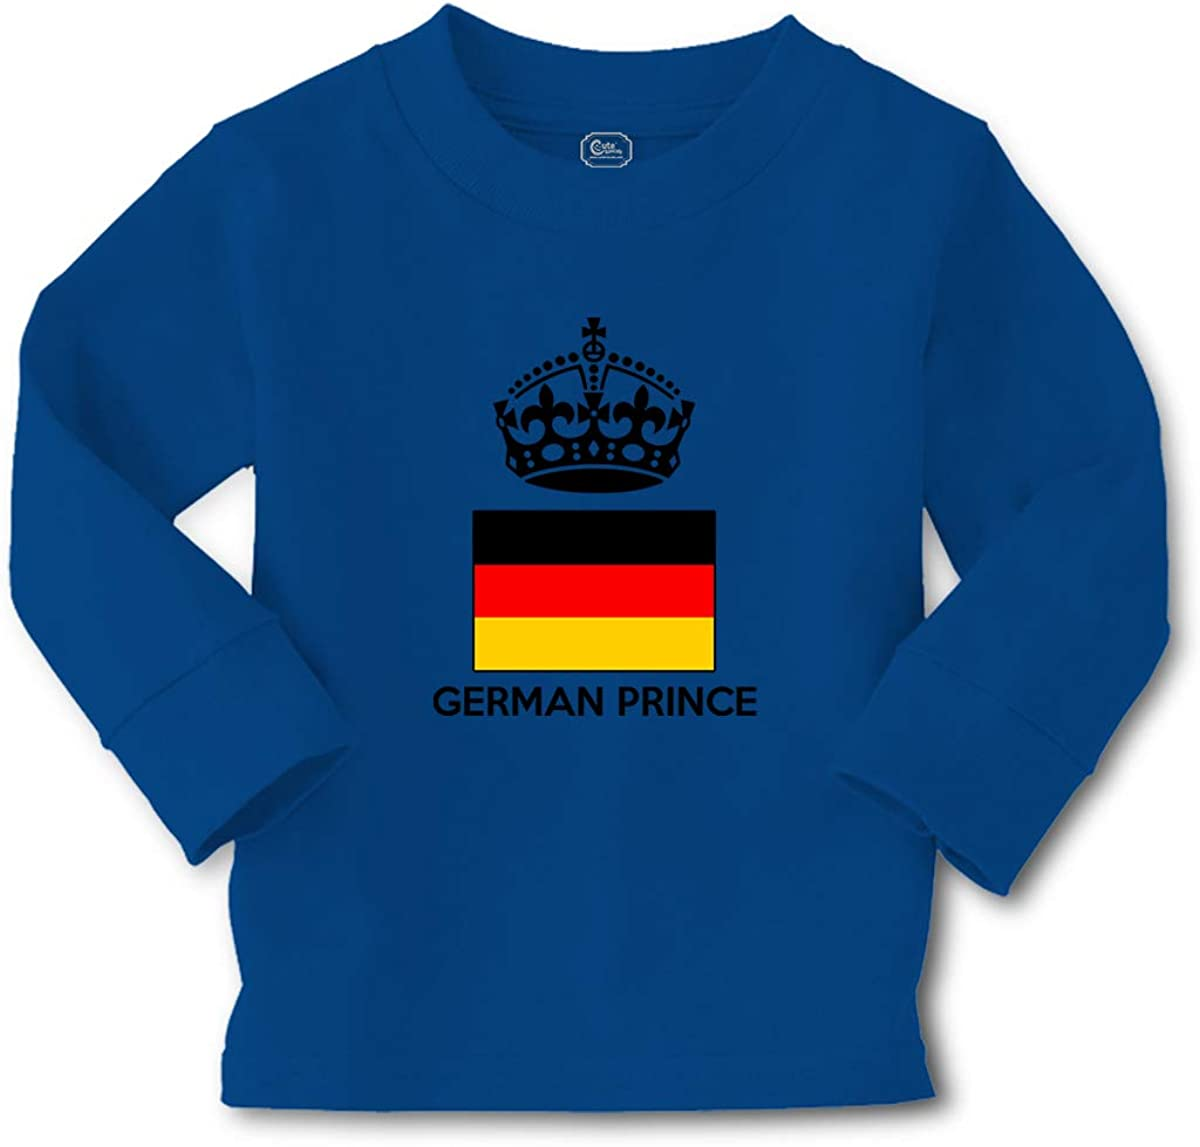 Cute Rascals Kids Long Sleeve T Shirt German Prince Crown Countries Cotton Boy & Girl Clothes Funny Graphic Tee Royal Blue Design Only 3T